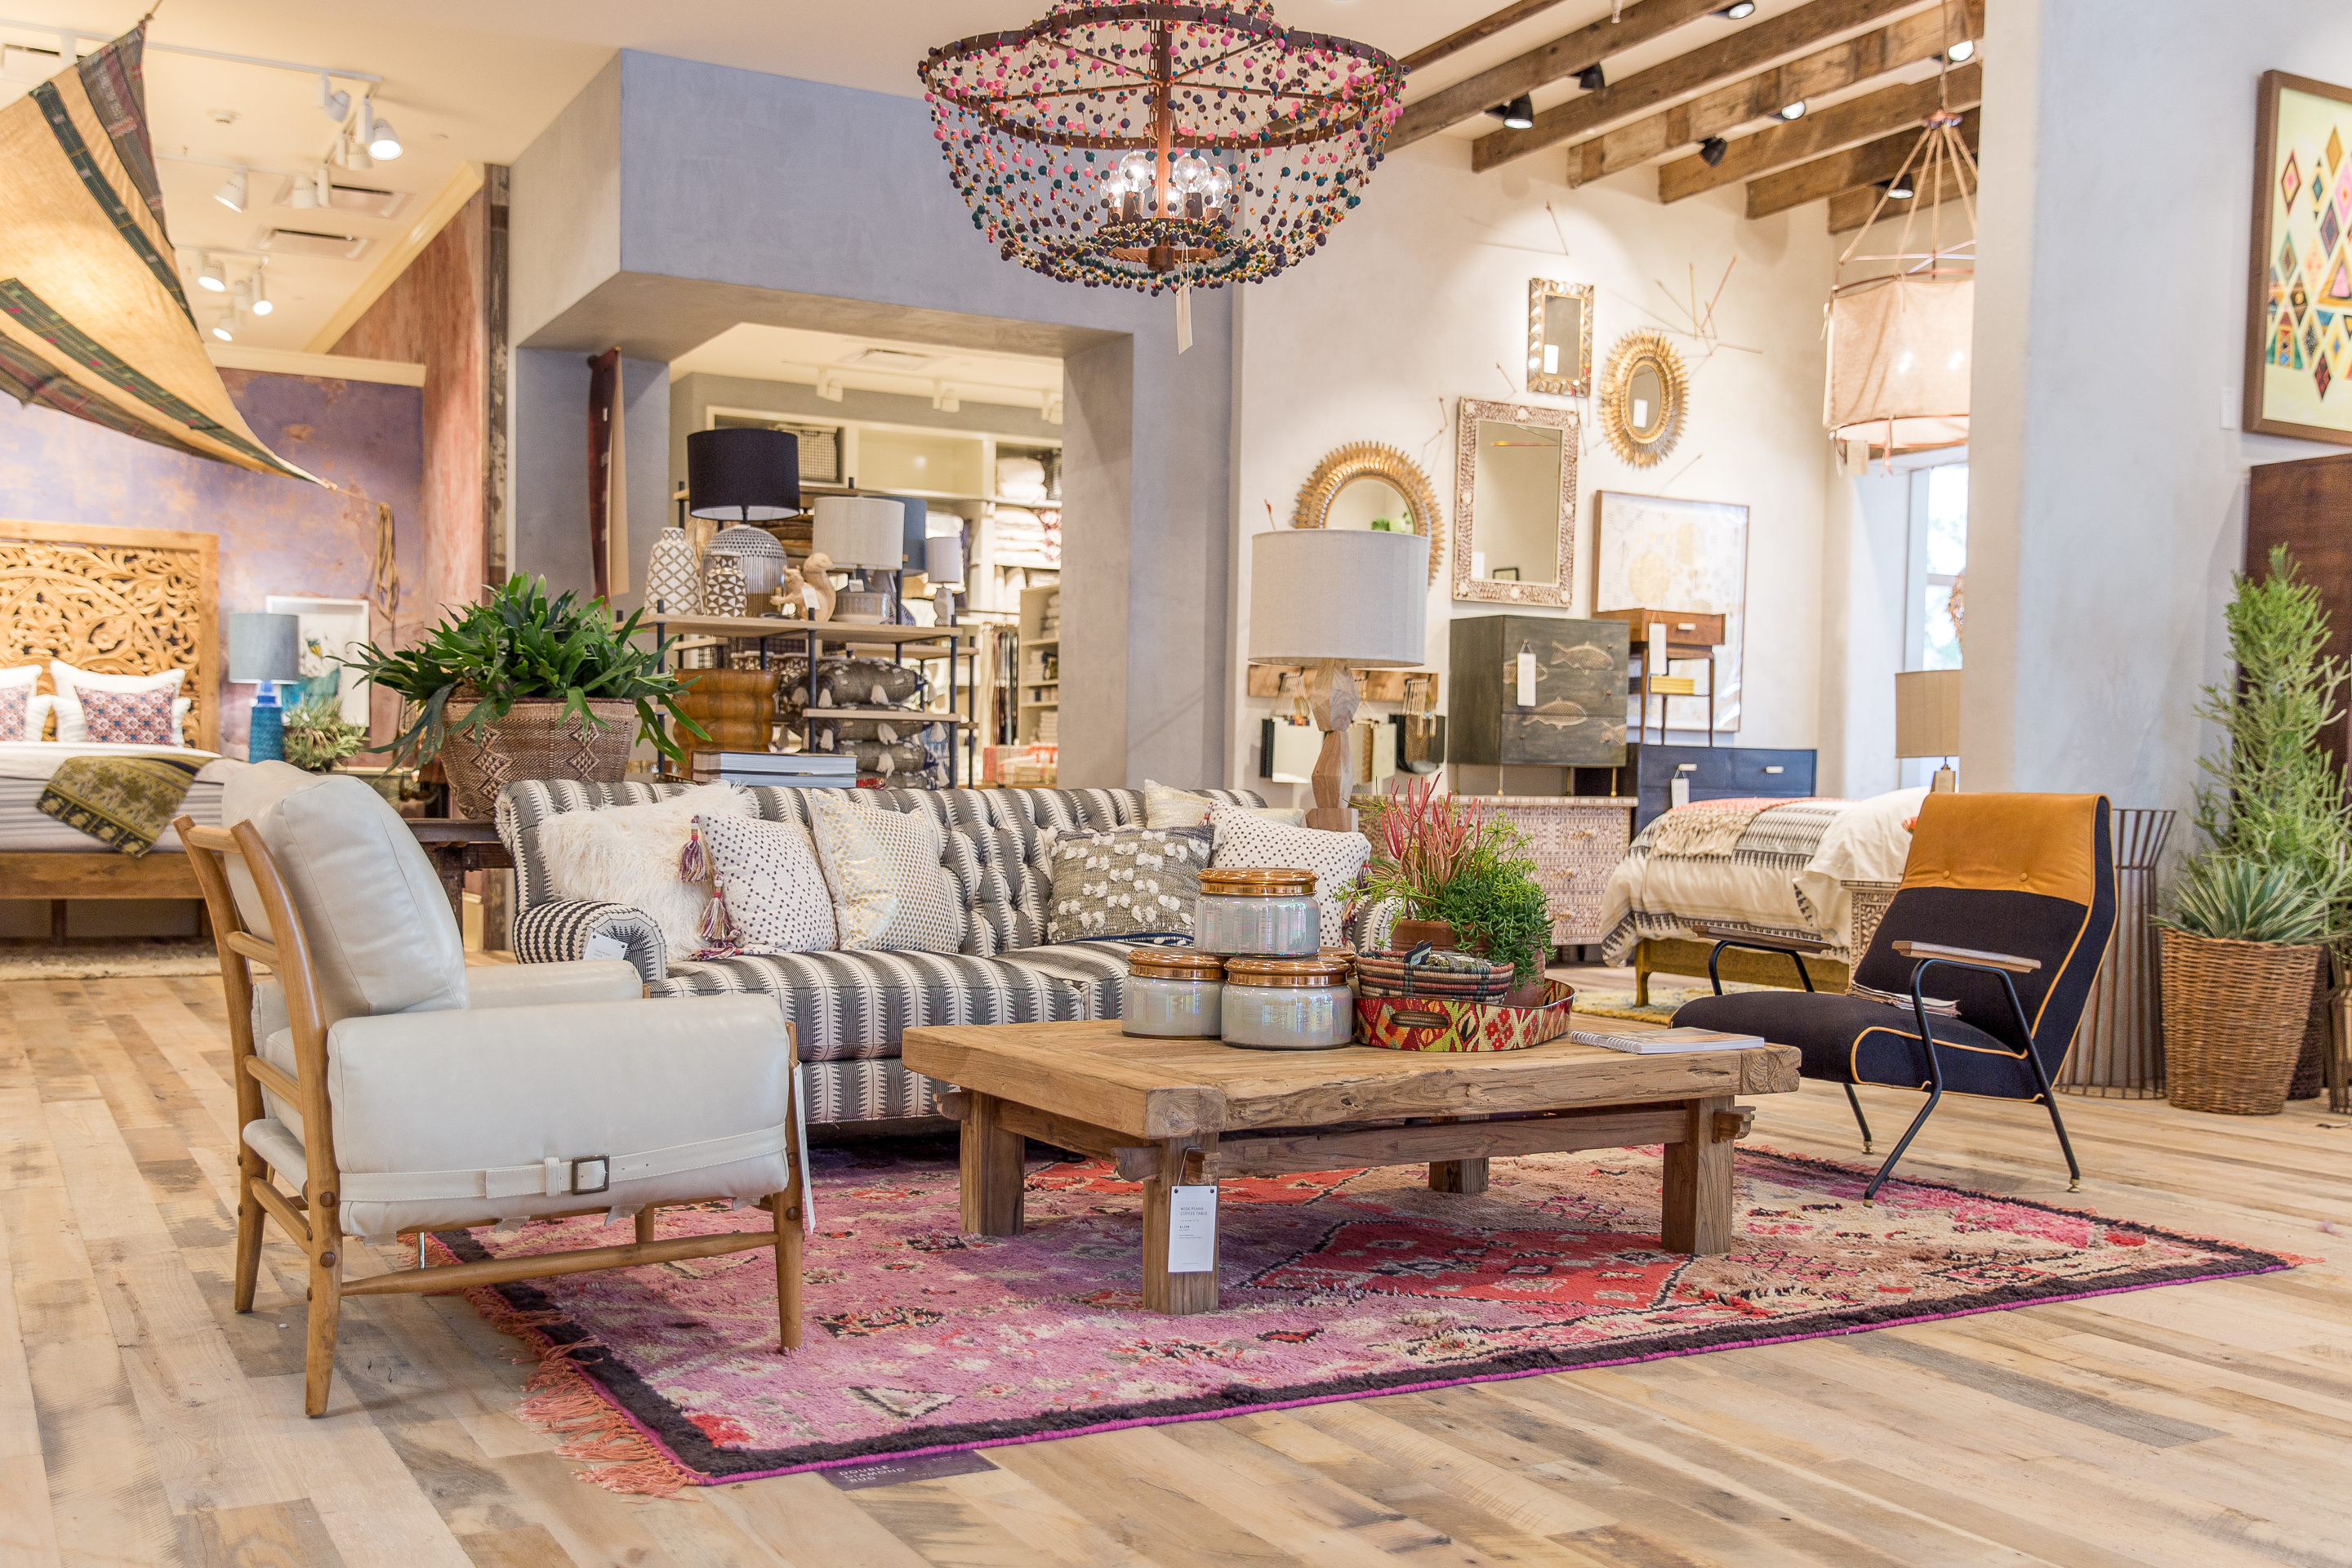 Anthropologie S Upgraded Newport Beach Store Offers Major Home Decor